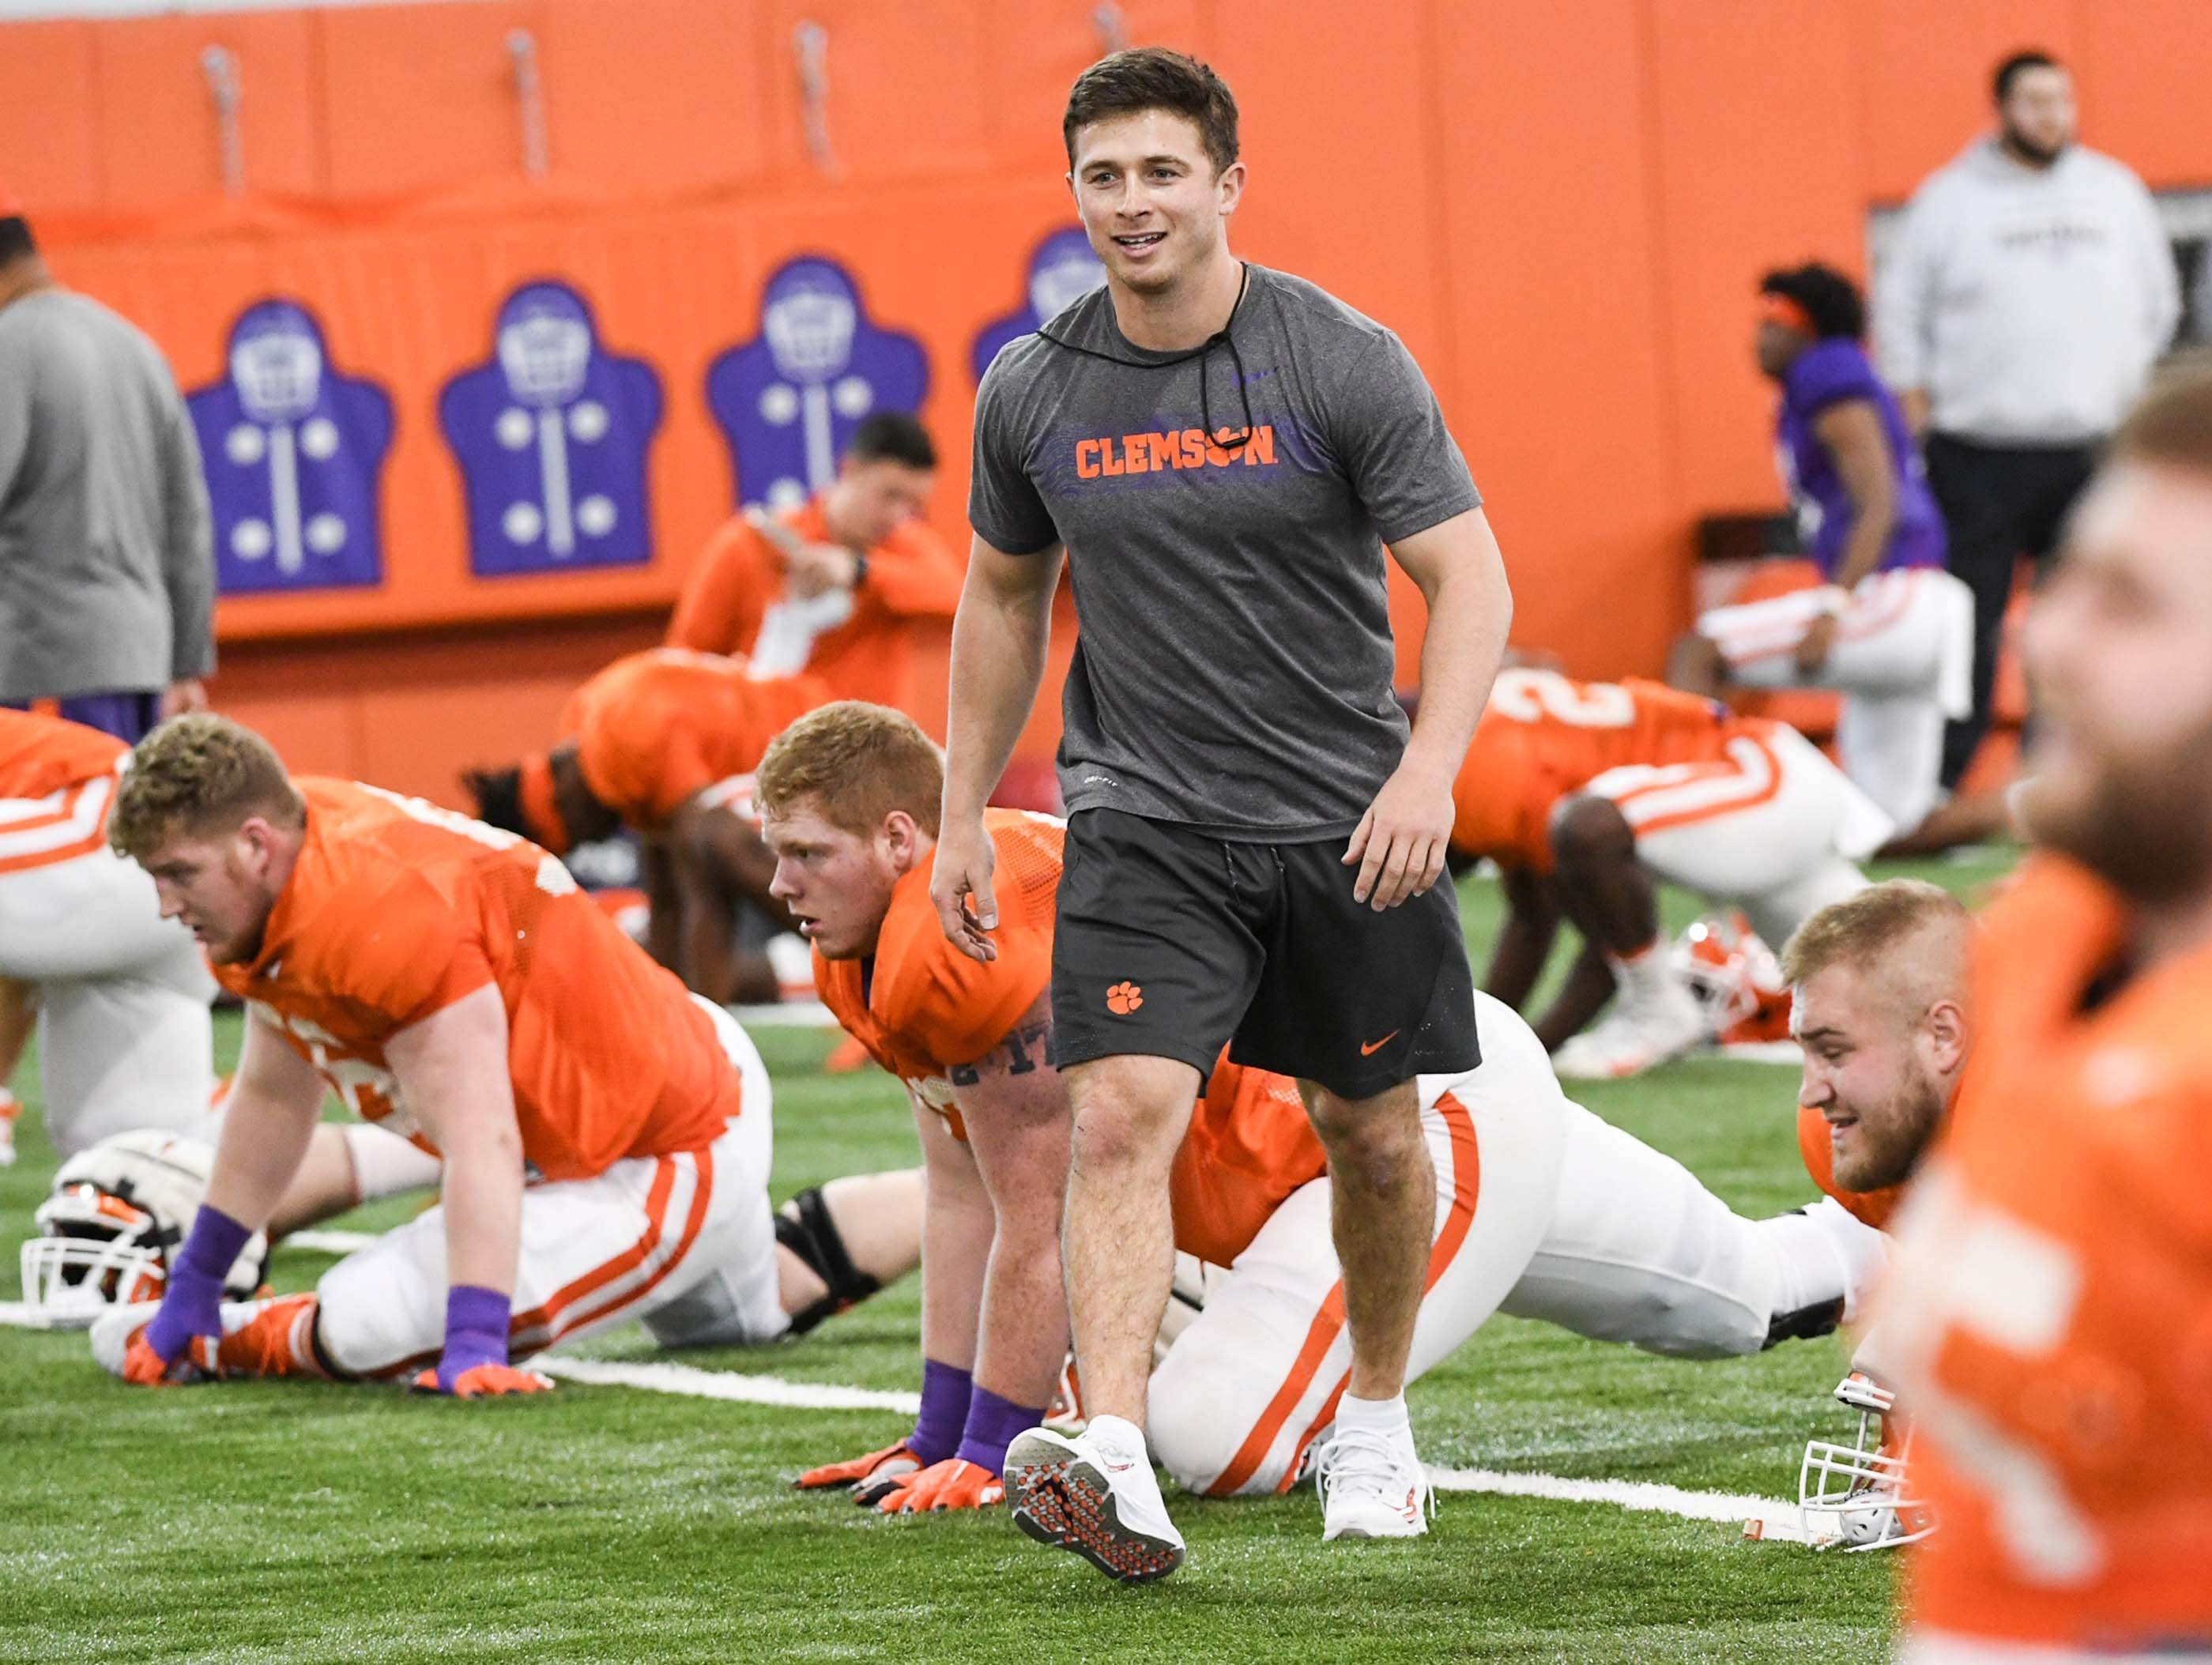 Former Clemson wide receiver Adrien Dunn walks through players stretching during practice at the Poe Indoor Facility in Clemson Monday.